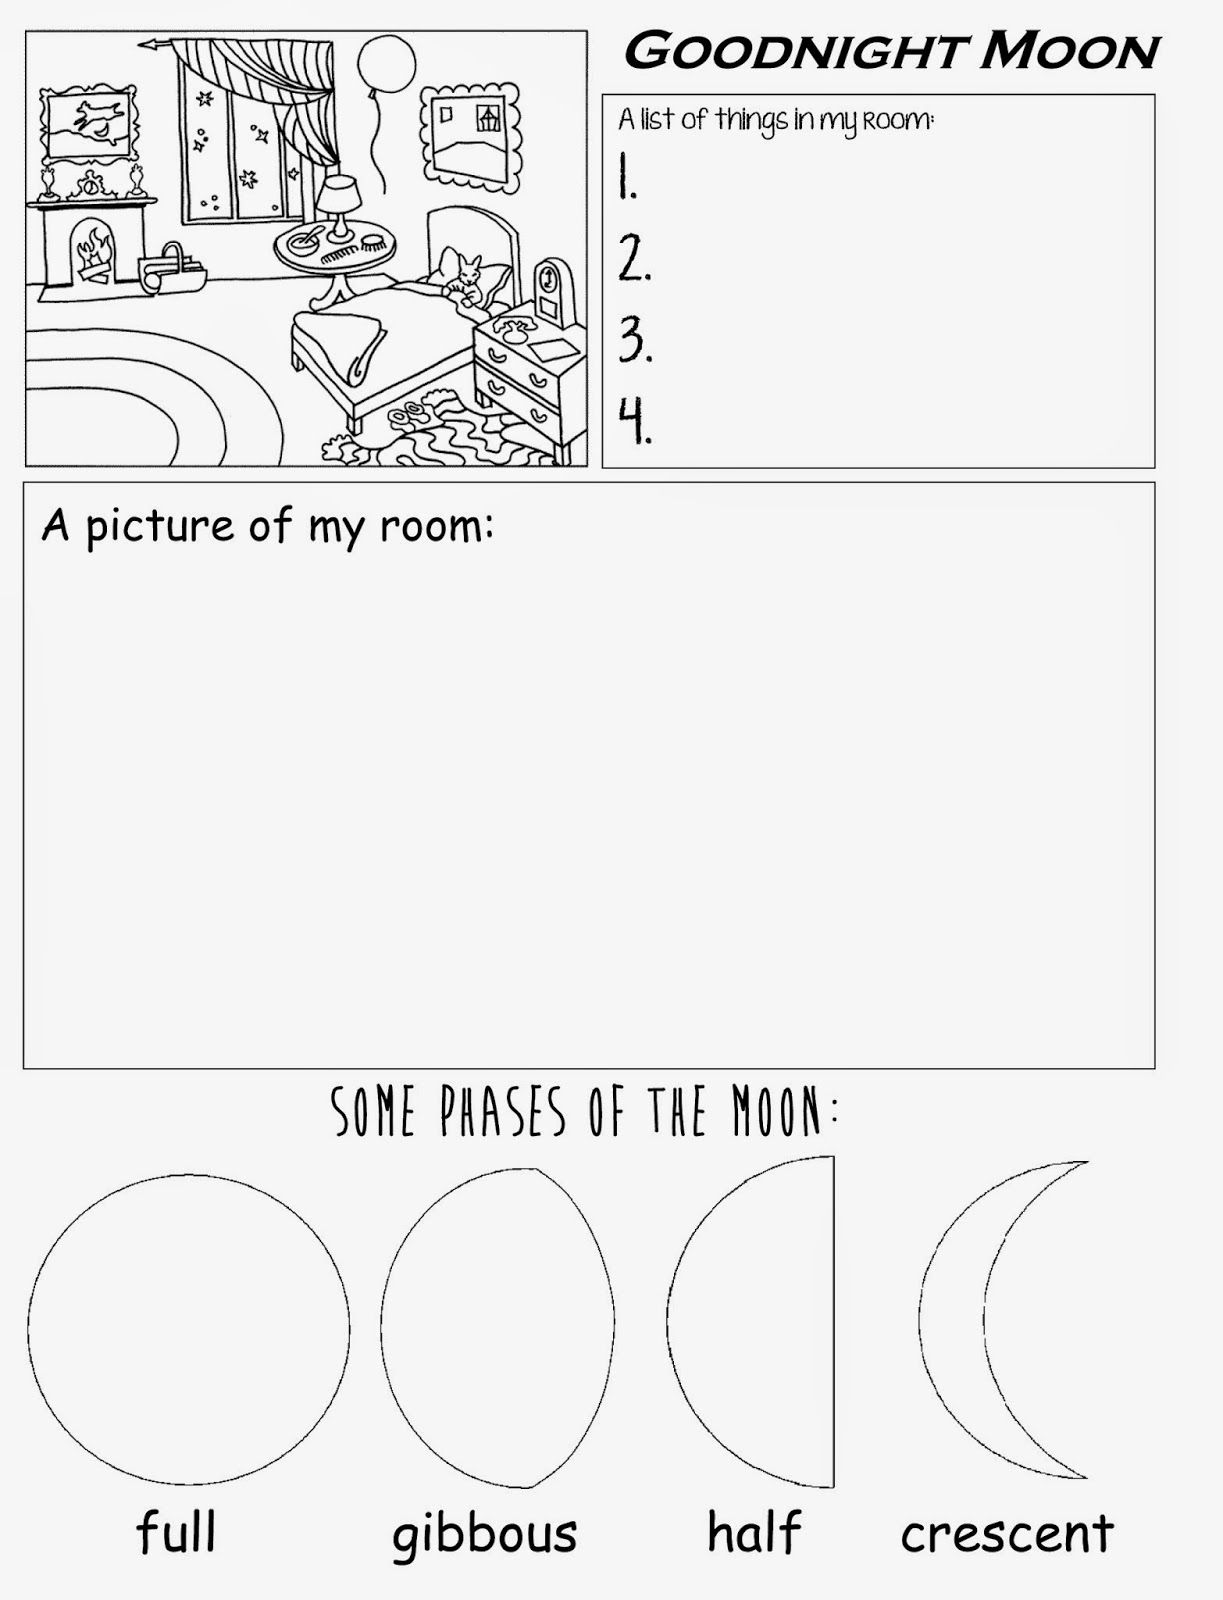 Goodnight moon free printable Worksheet for preschool